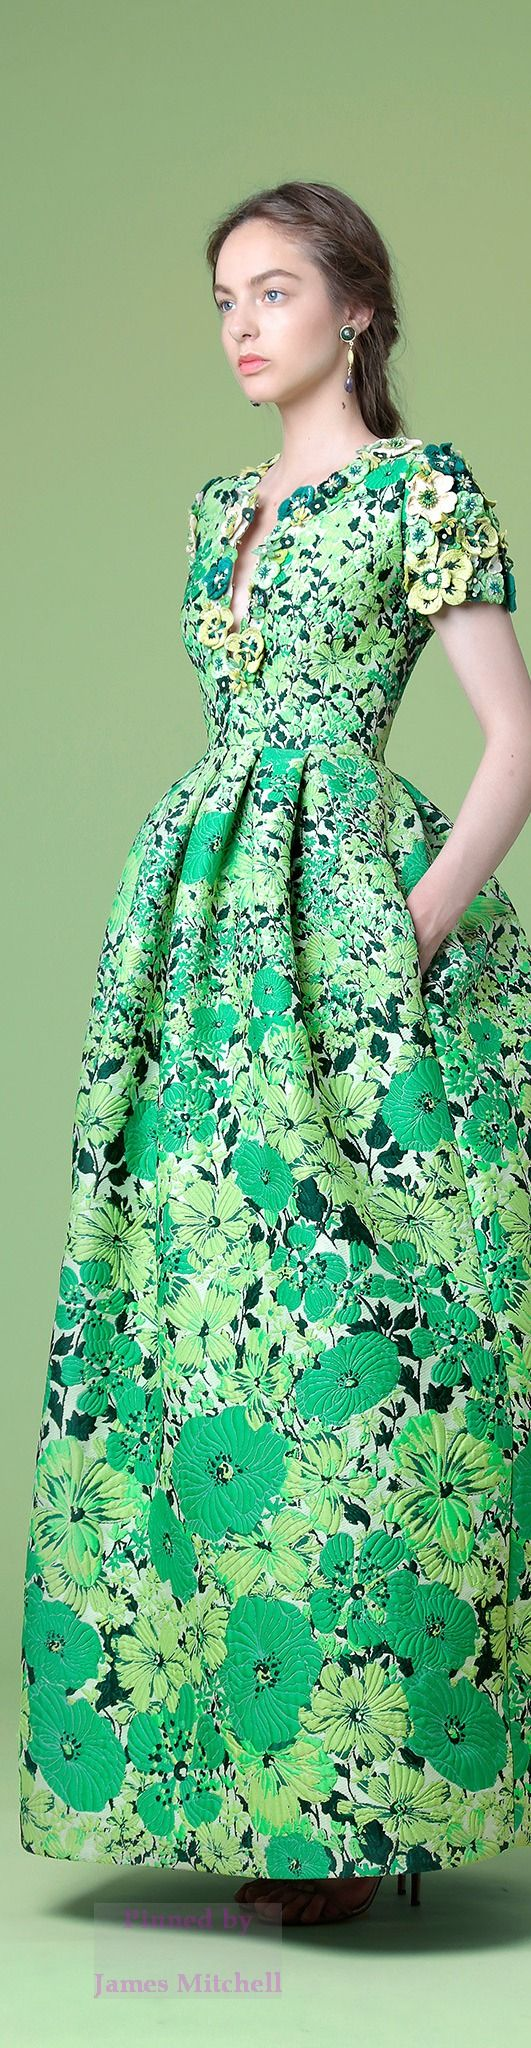 Andrew Gn Resort 15: floral green gown.